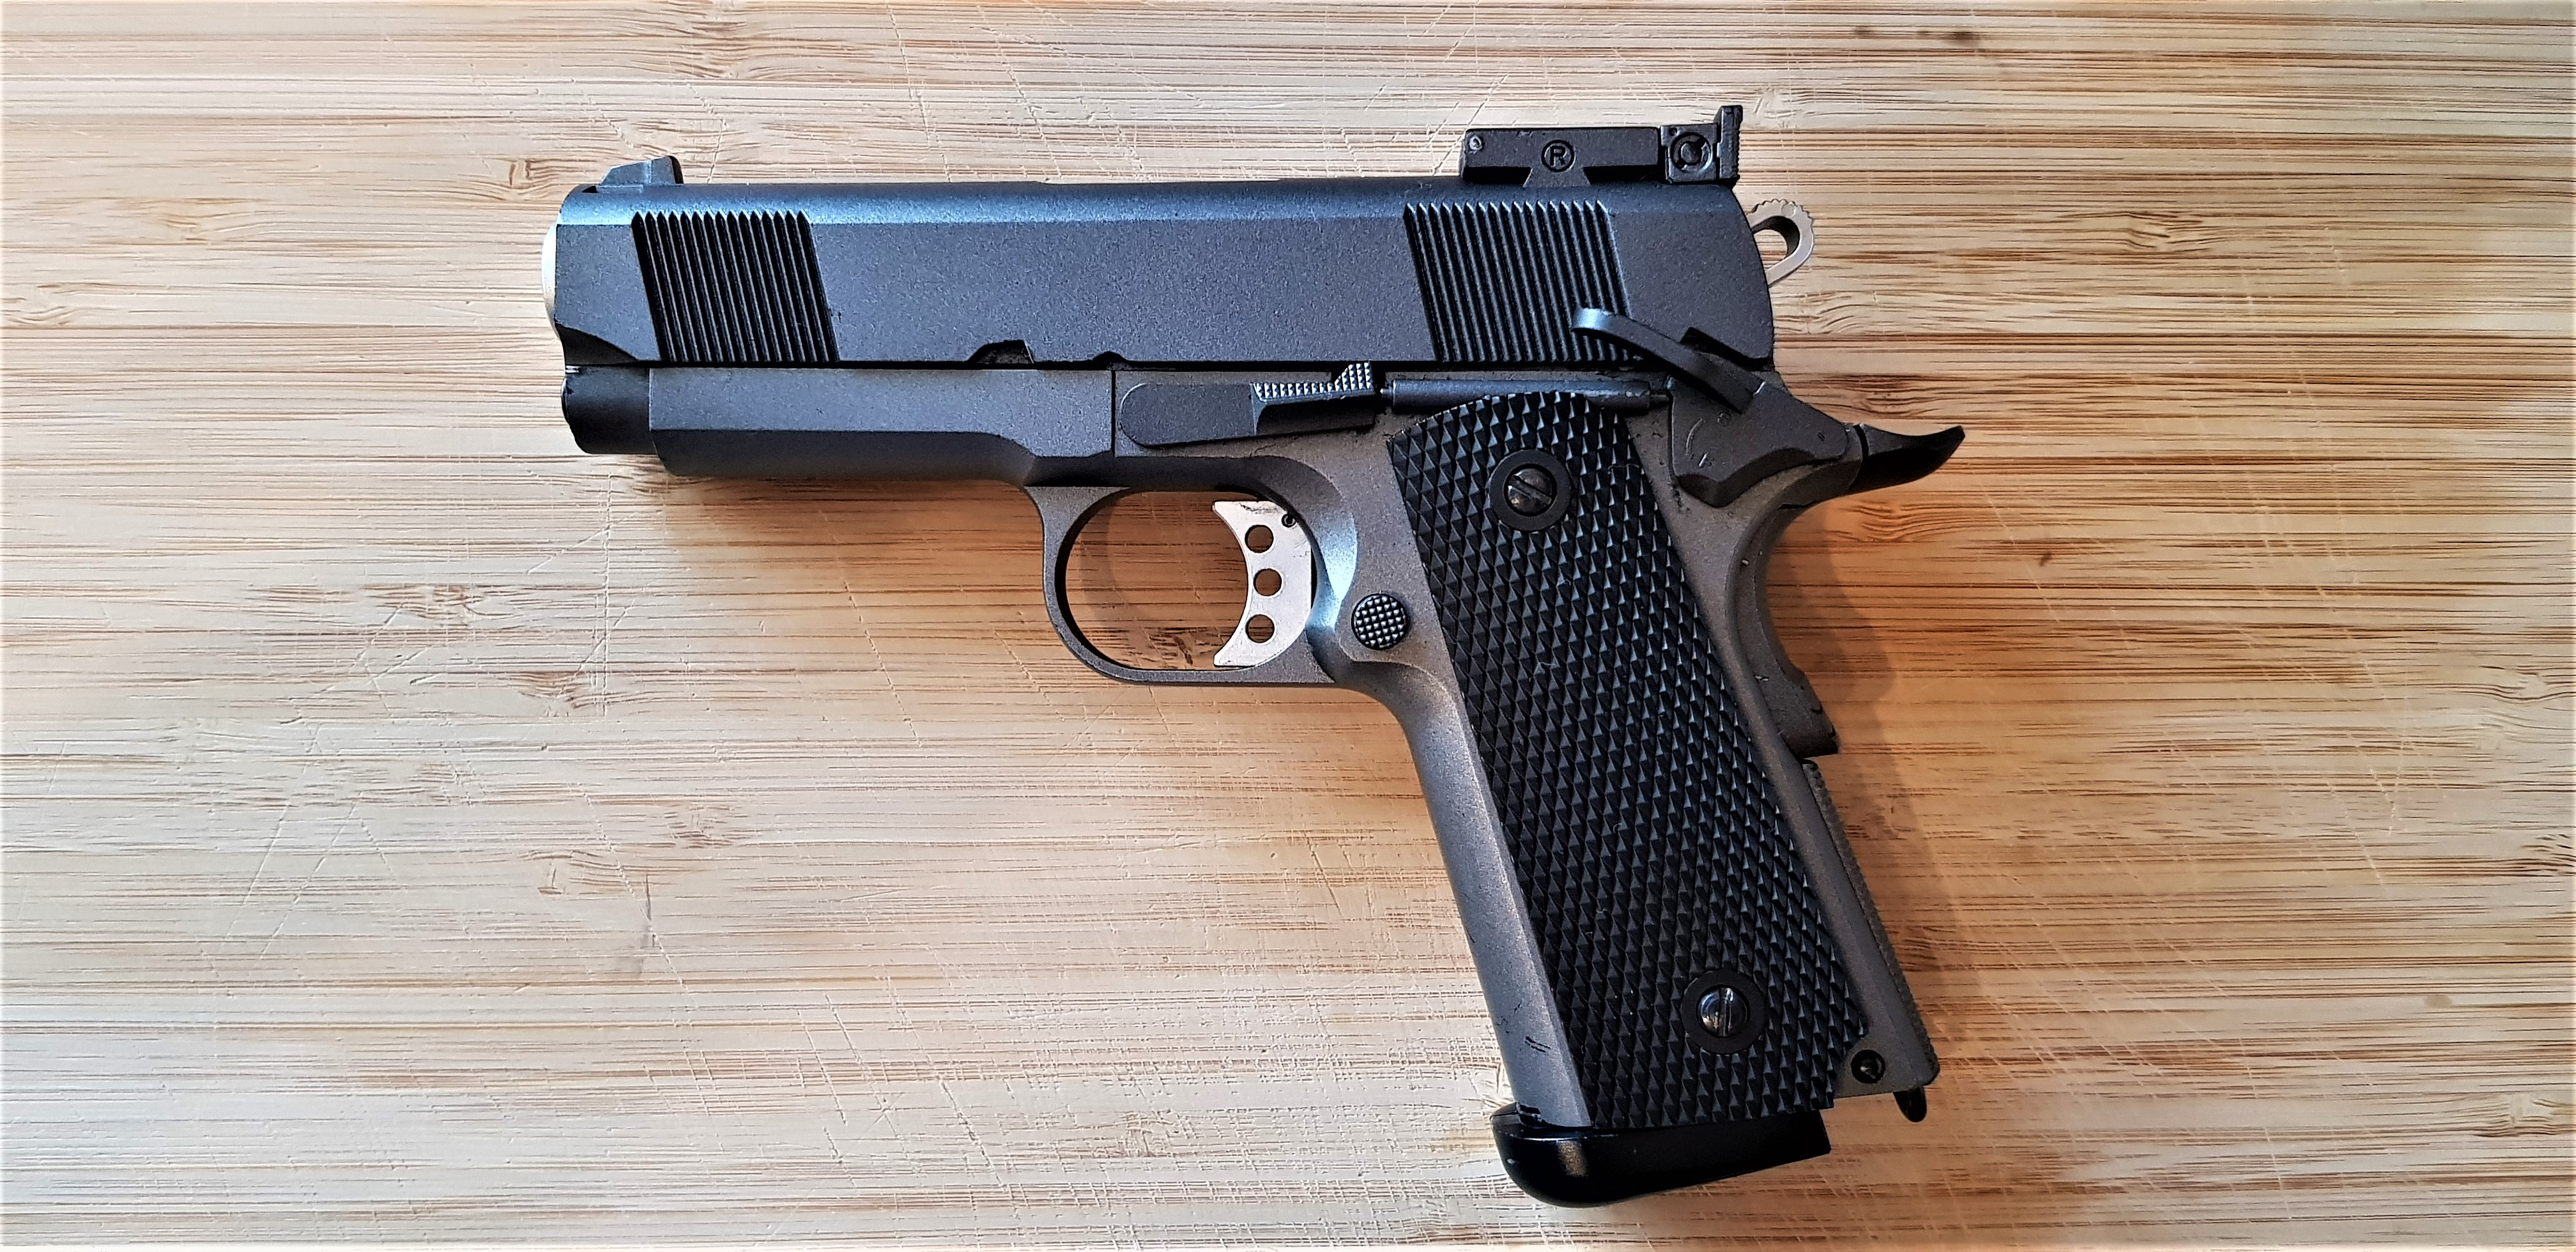 Colt M1911 (Blow-back Pistol)